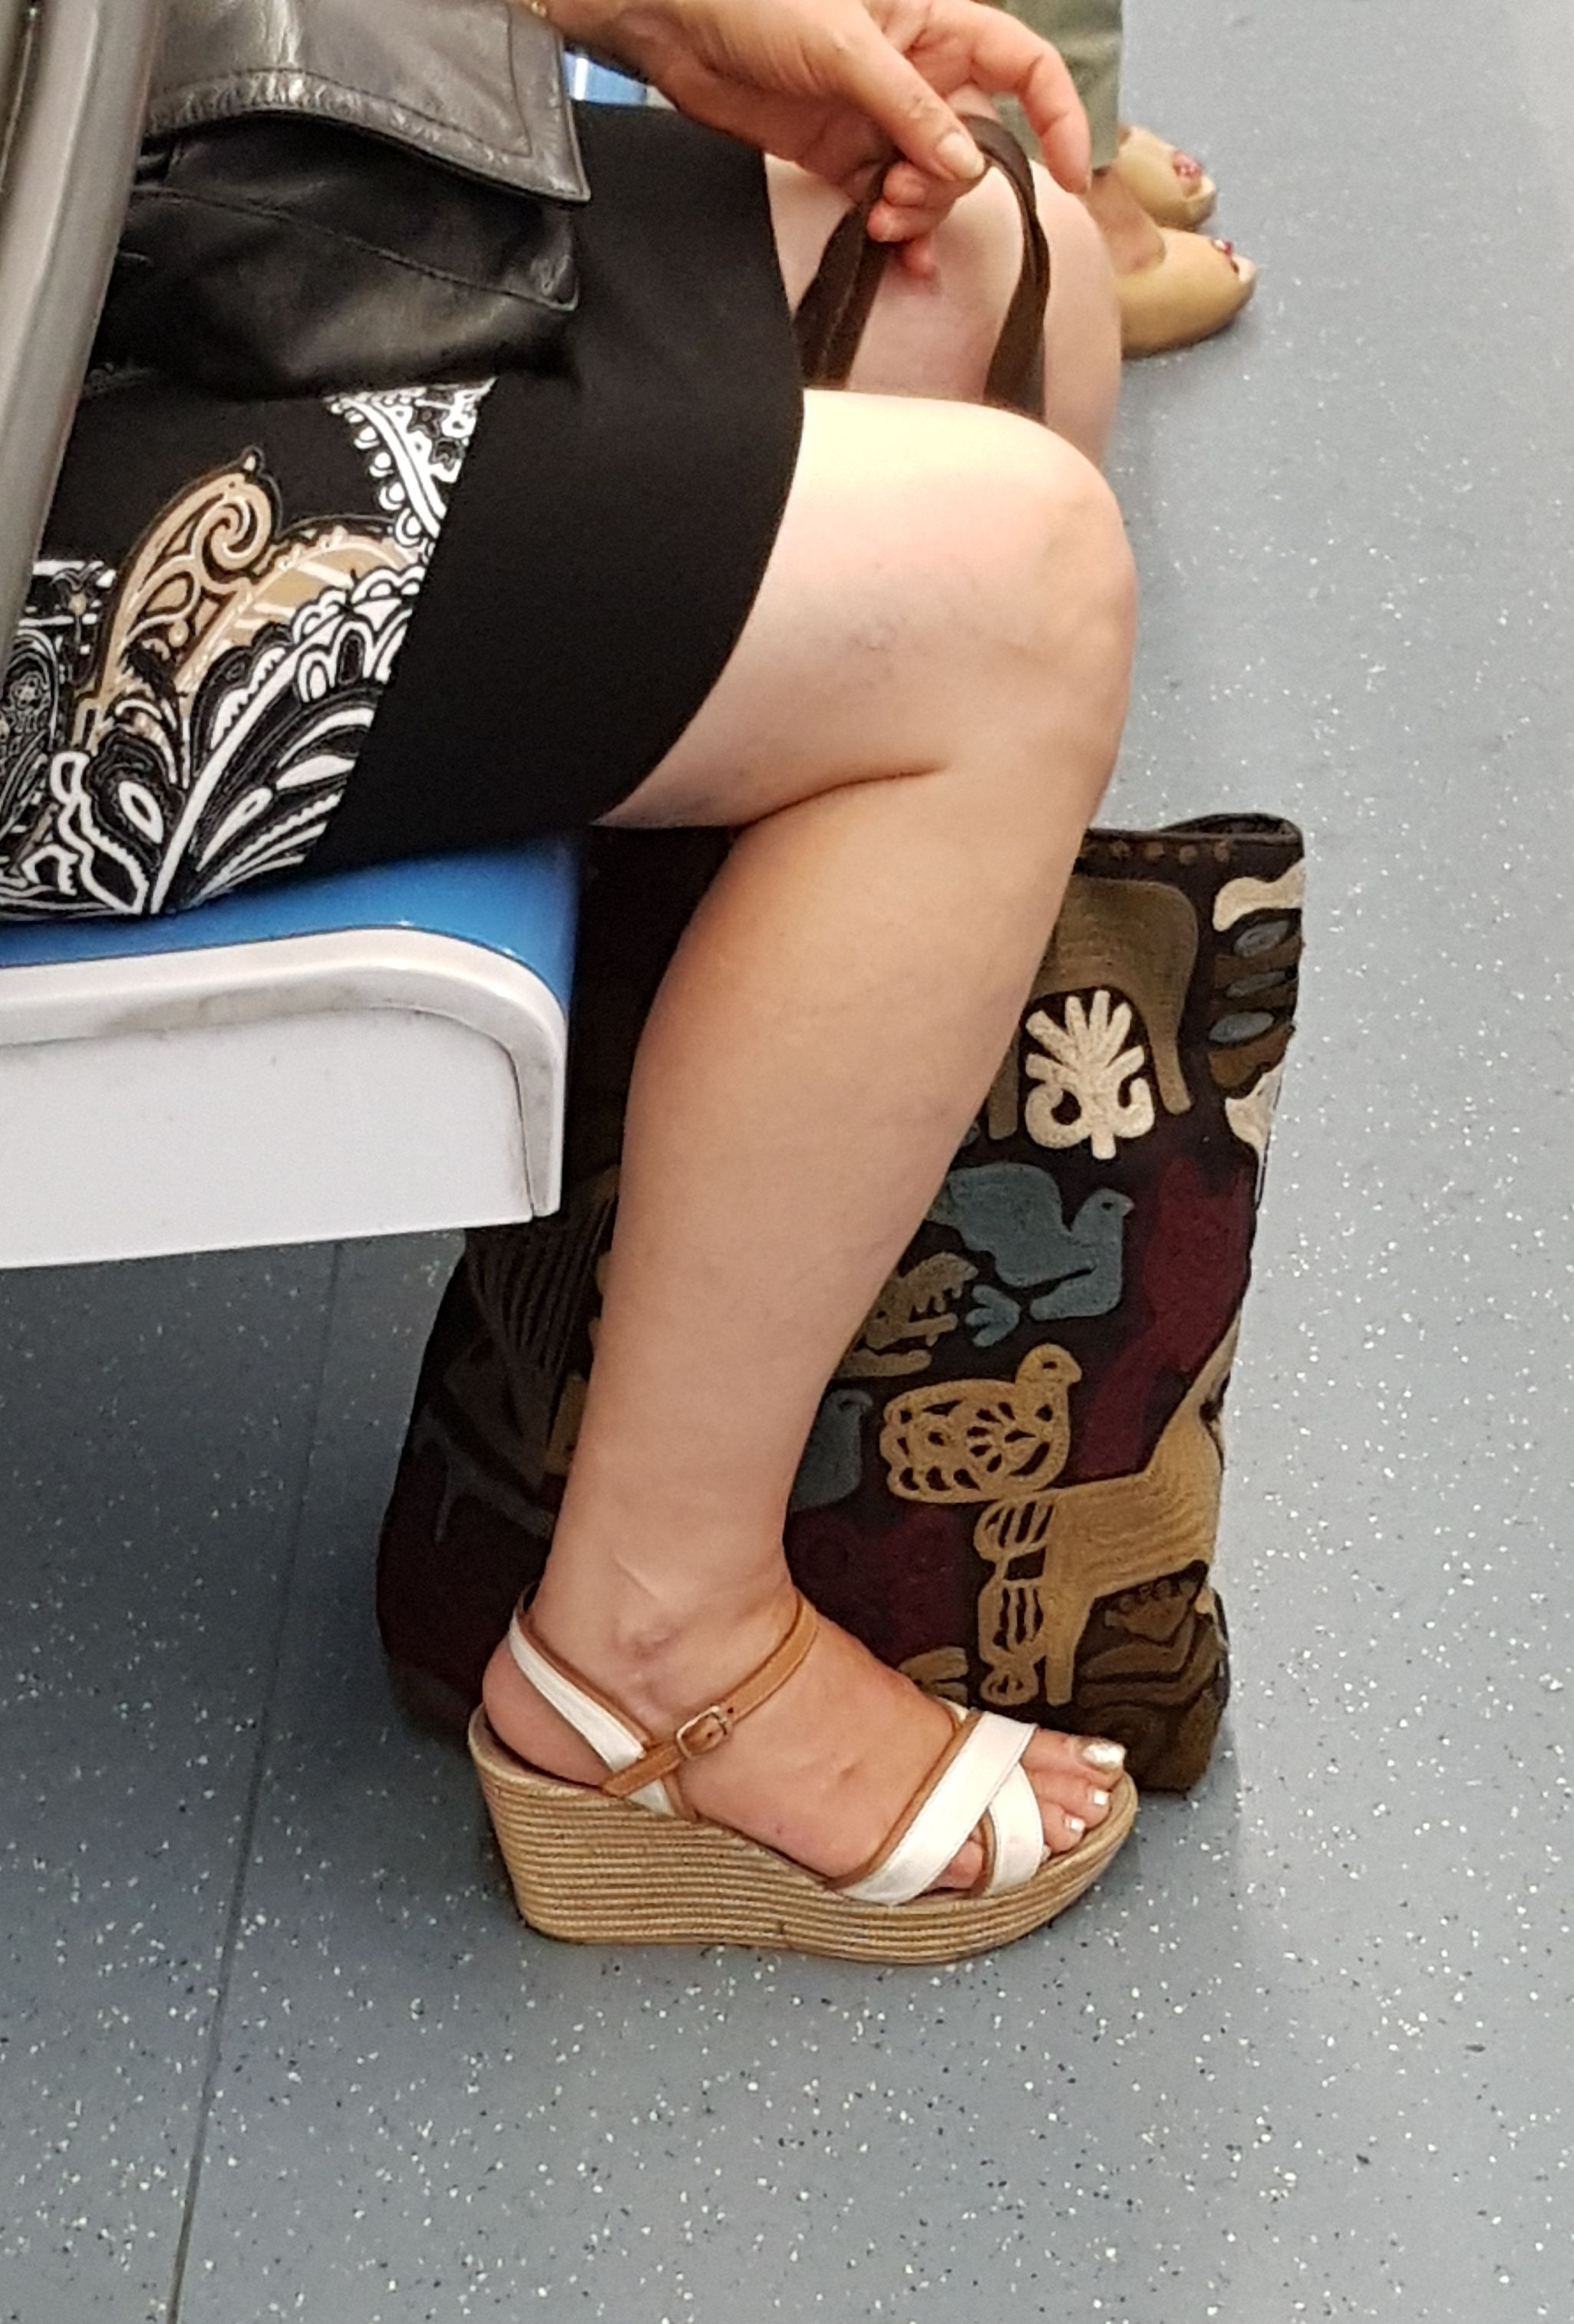 96970fbae Candid wedges mature  candidmature  sandals  wedges